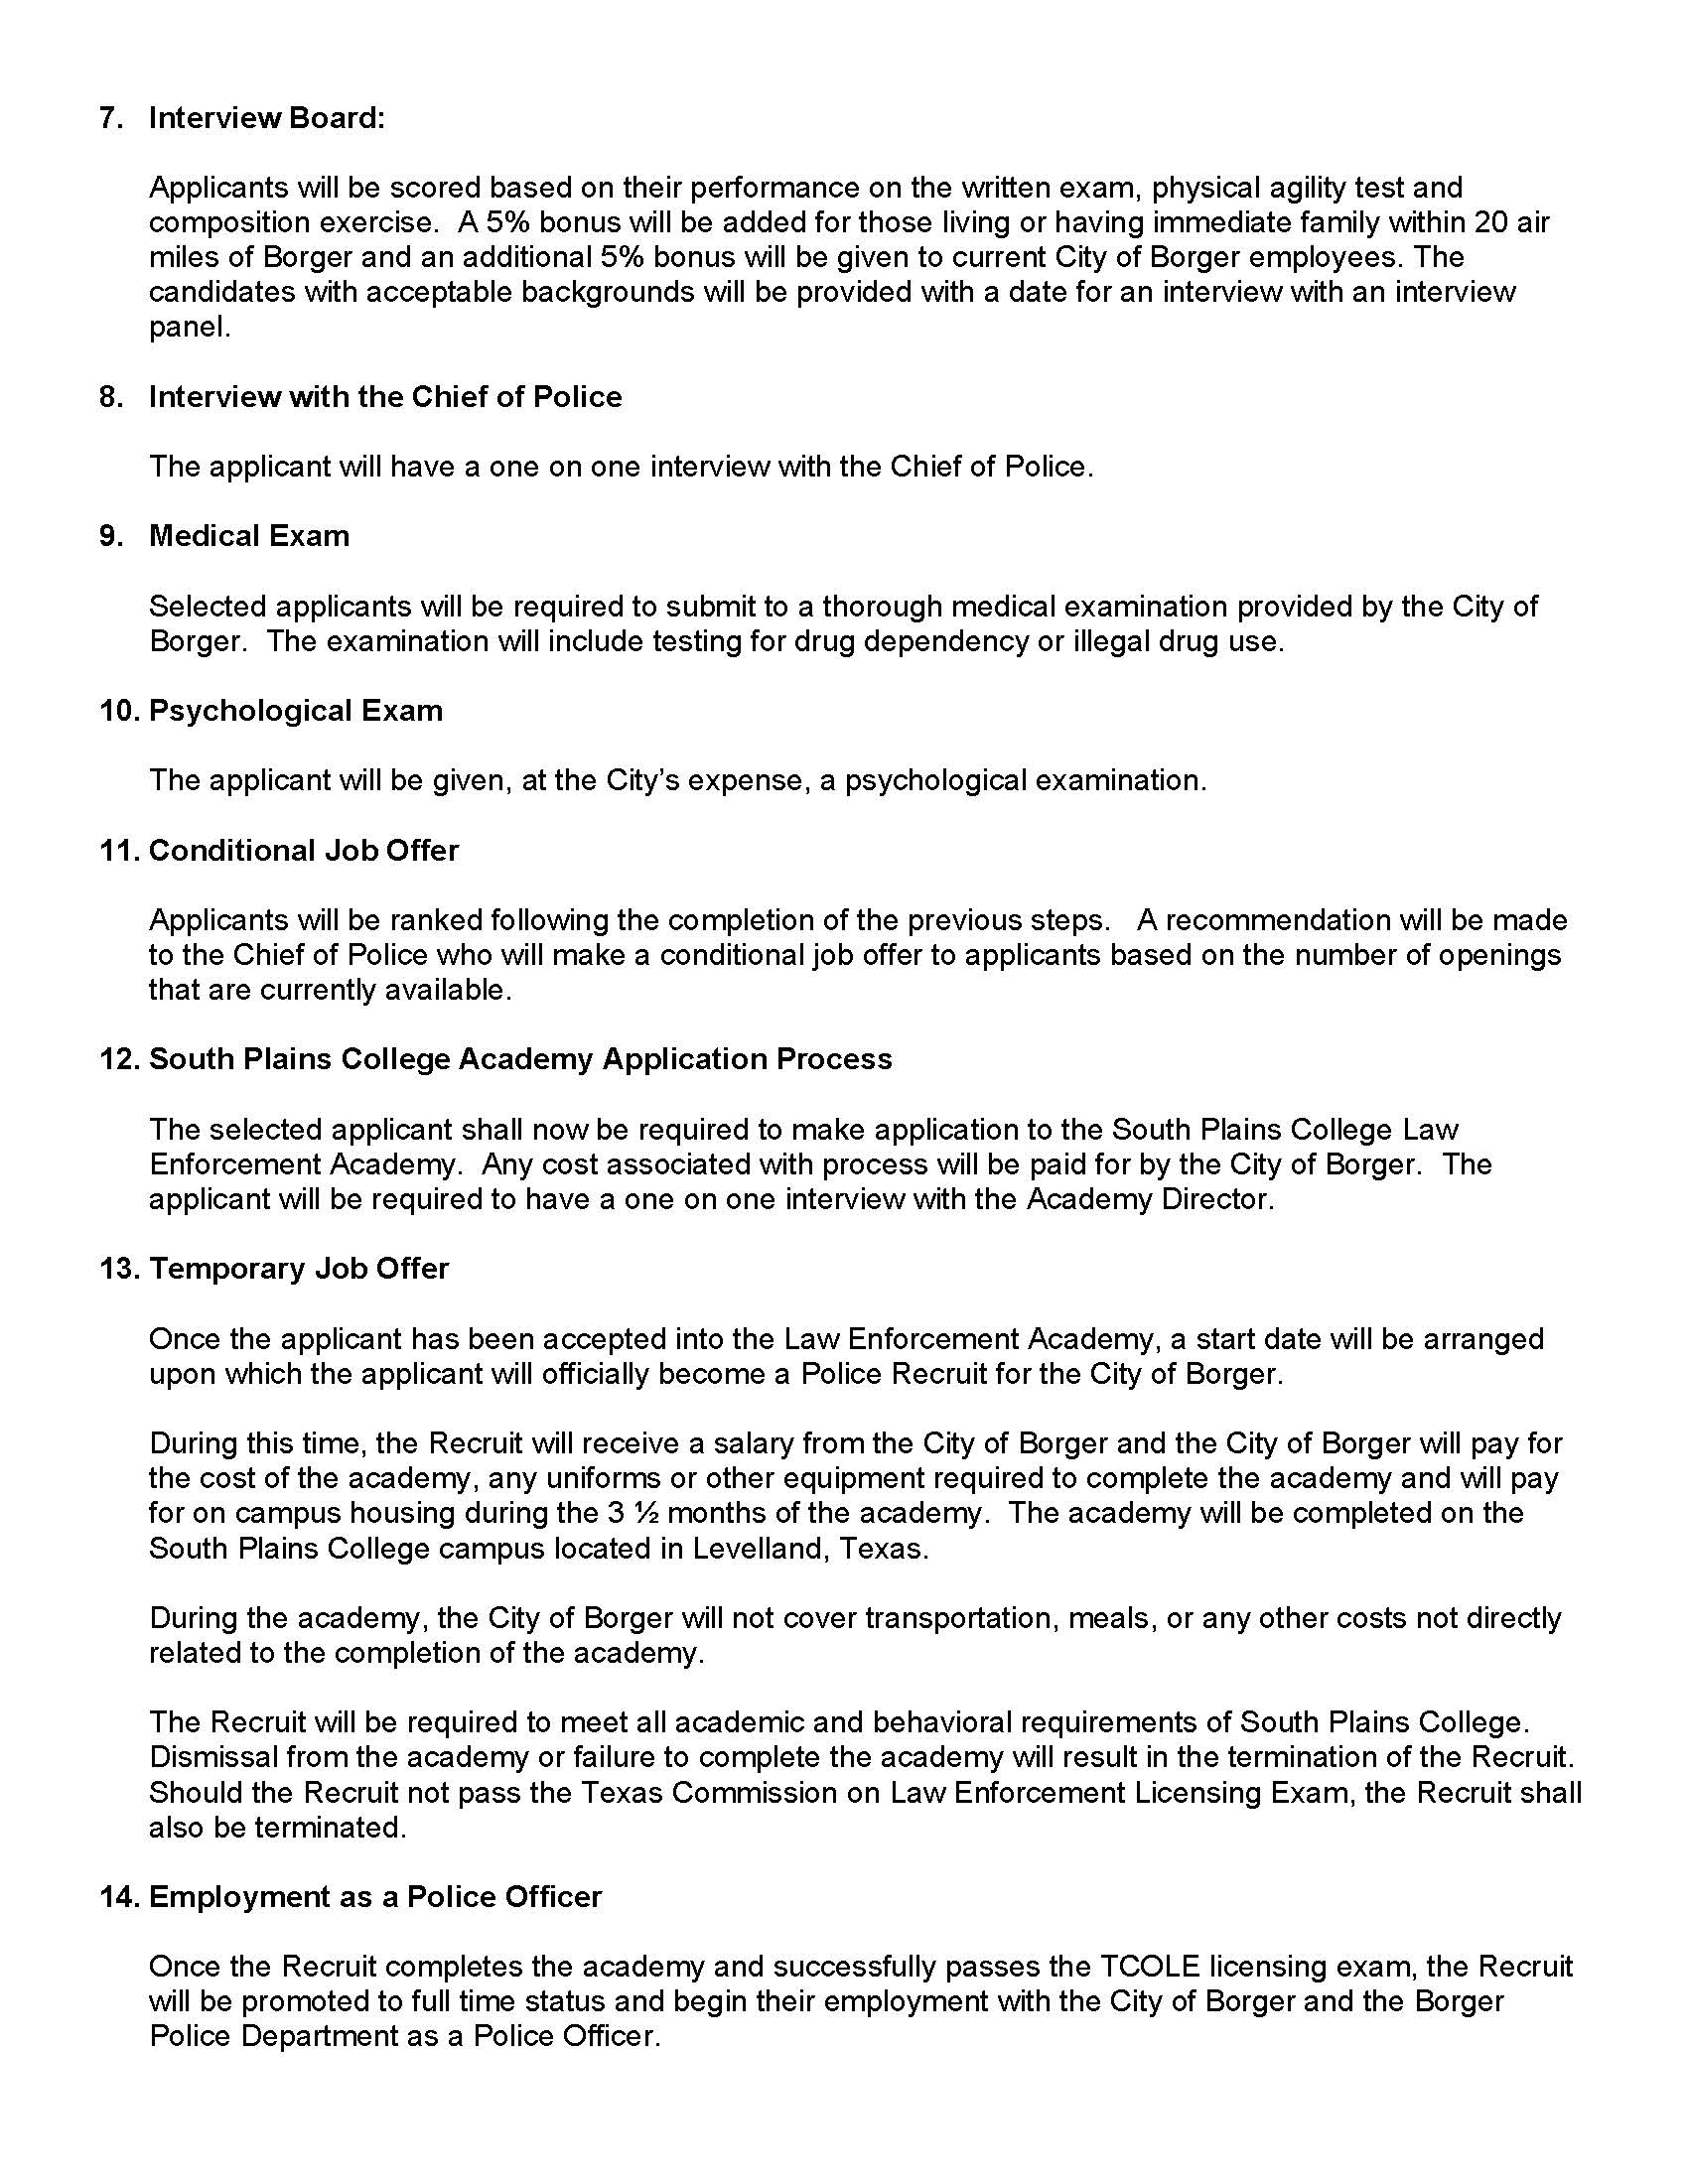 2019 - Police Recurit Hiring Process 3page_Page_3